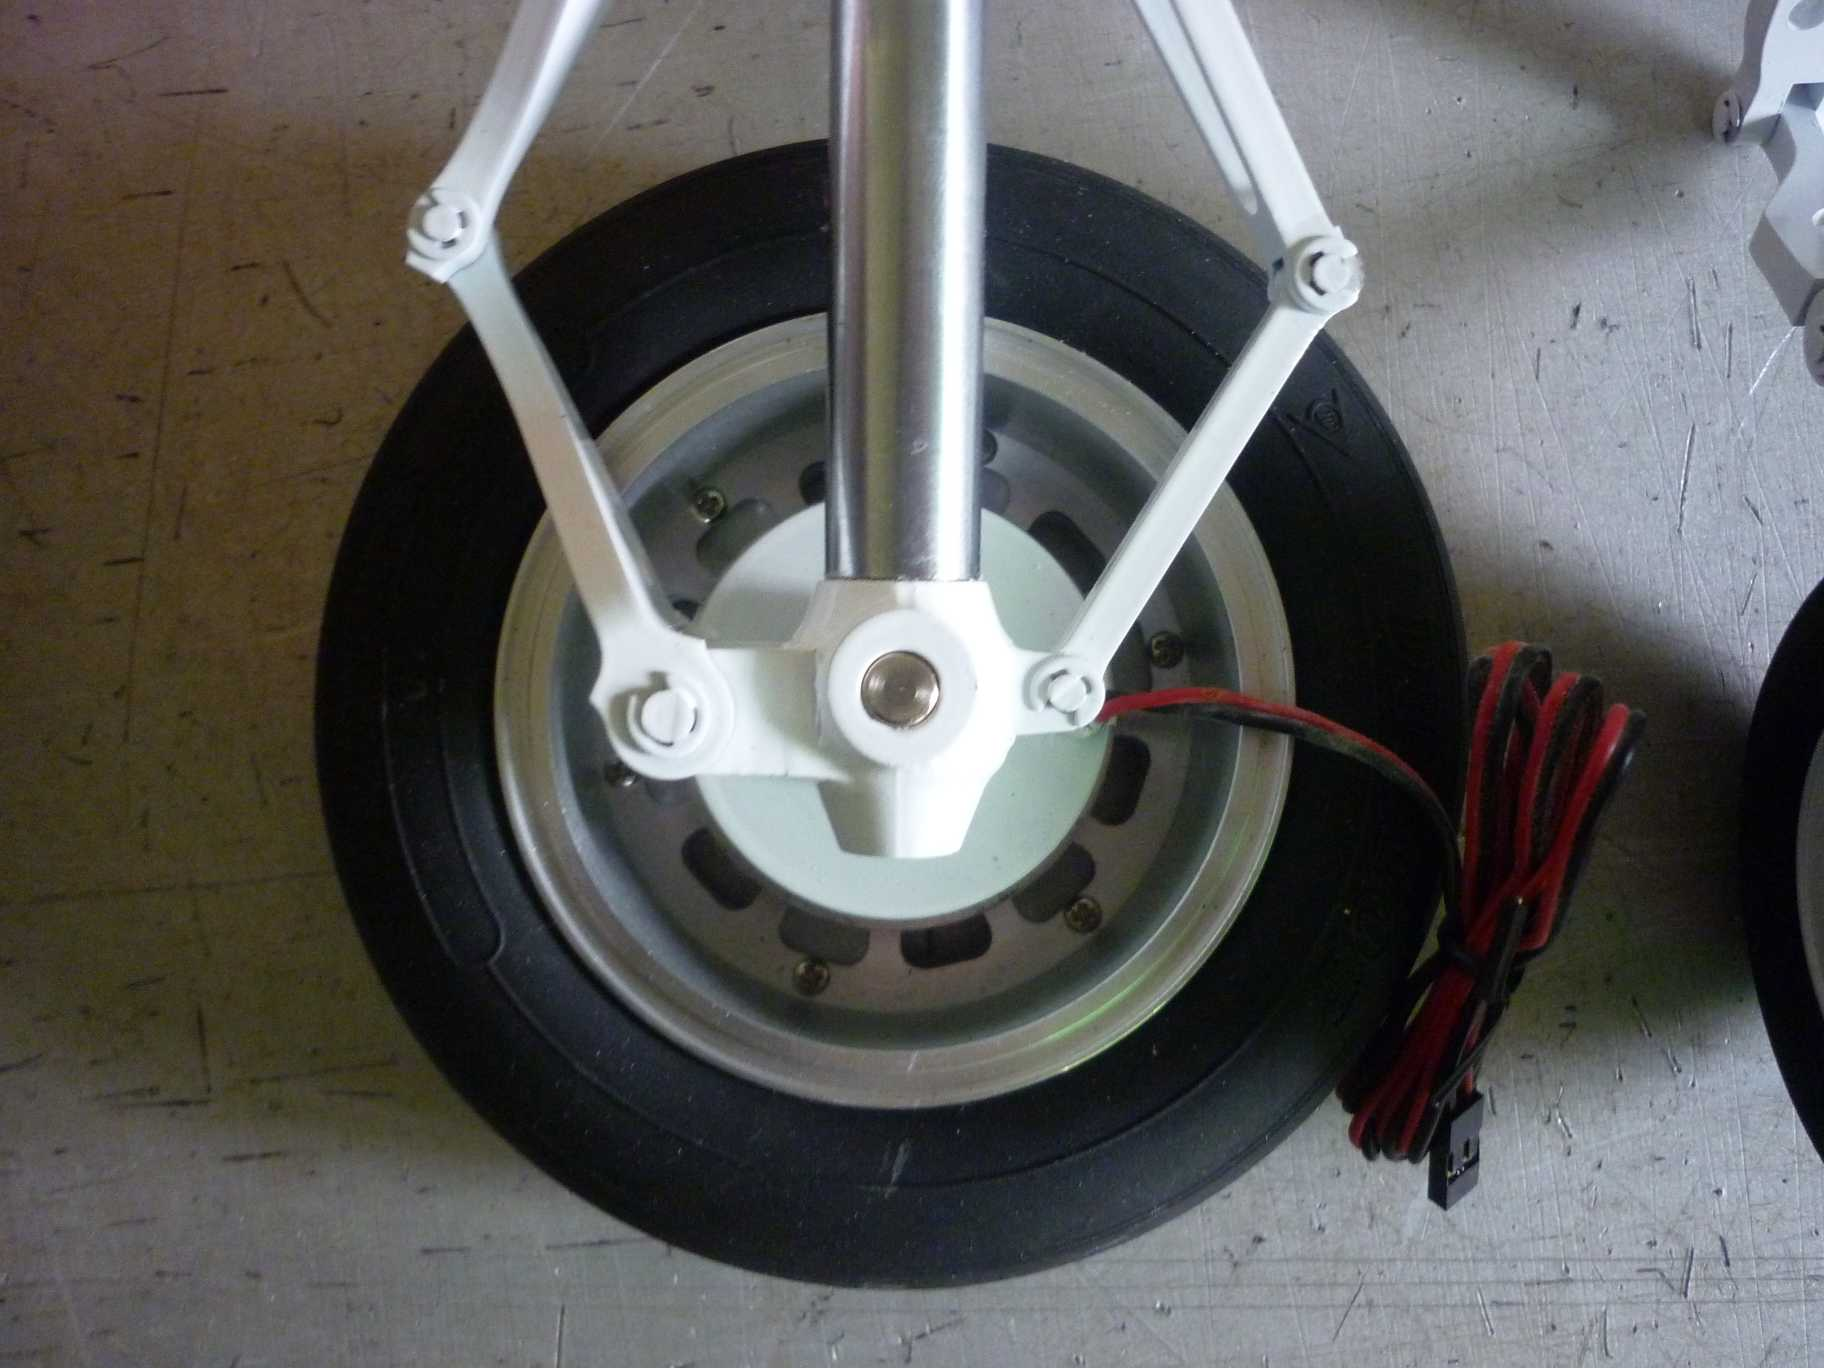 m346%20rim%20with%20electric%20brake.jpg